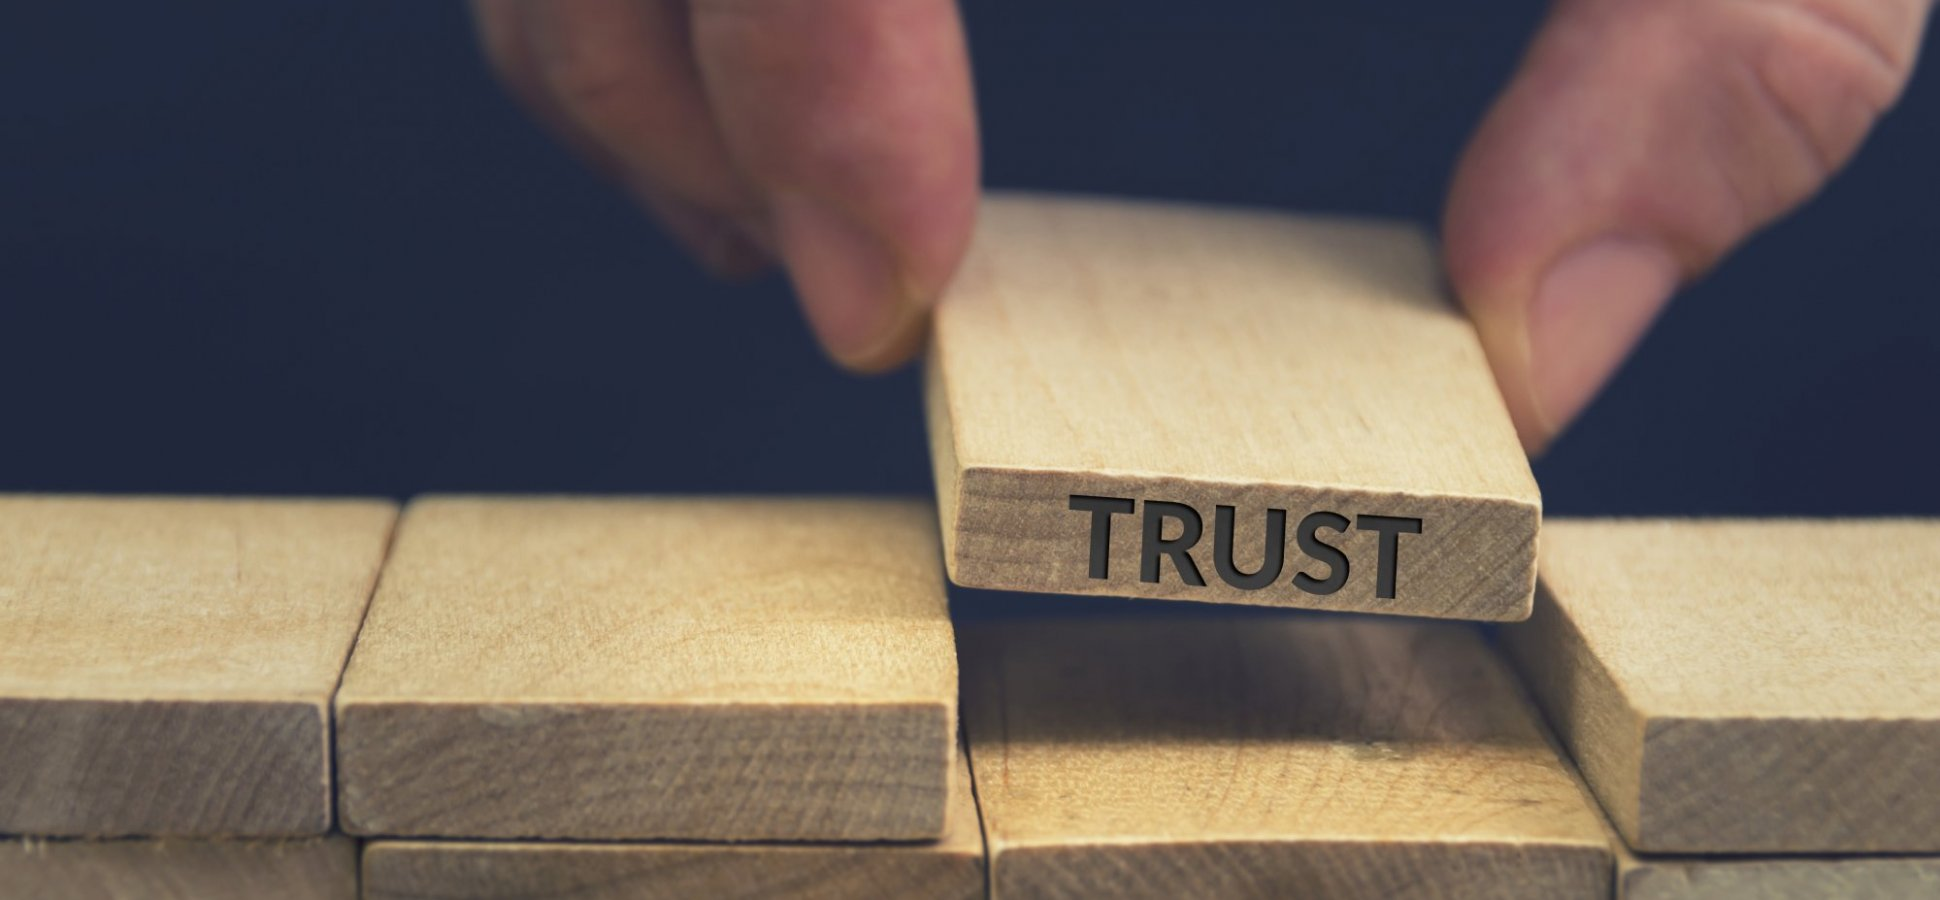 How to Build Customer Trust in 3 Powerful Ways